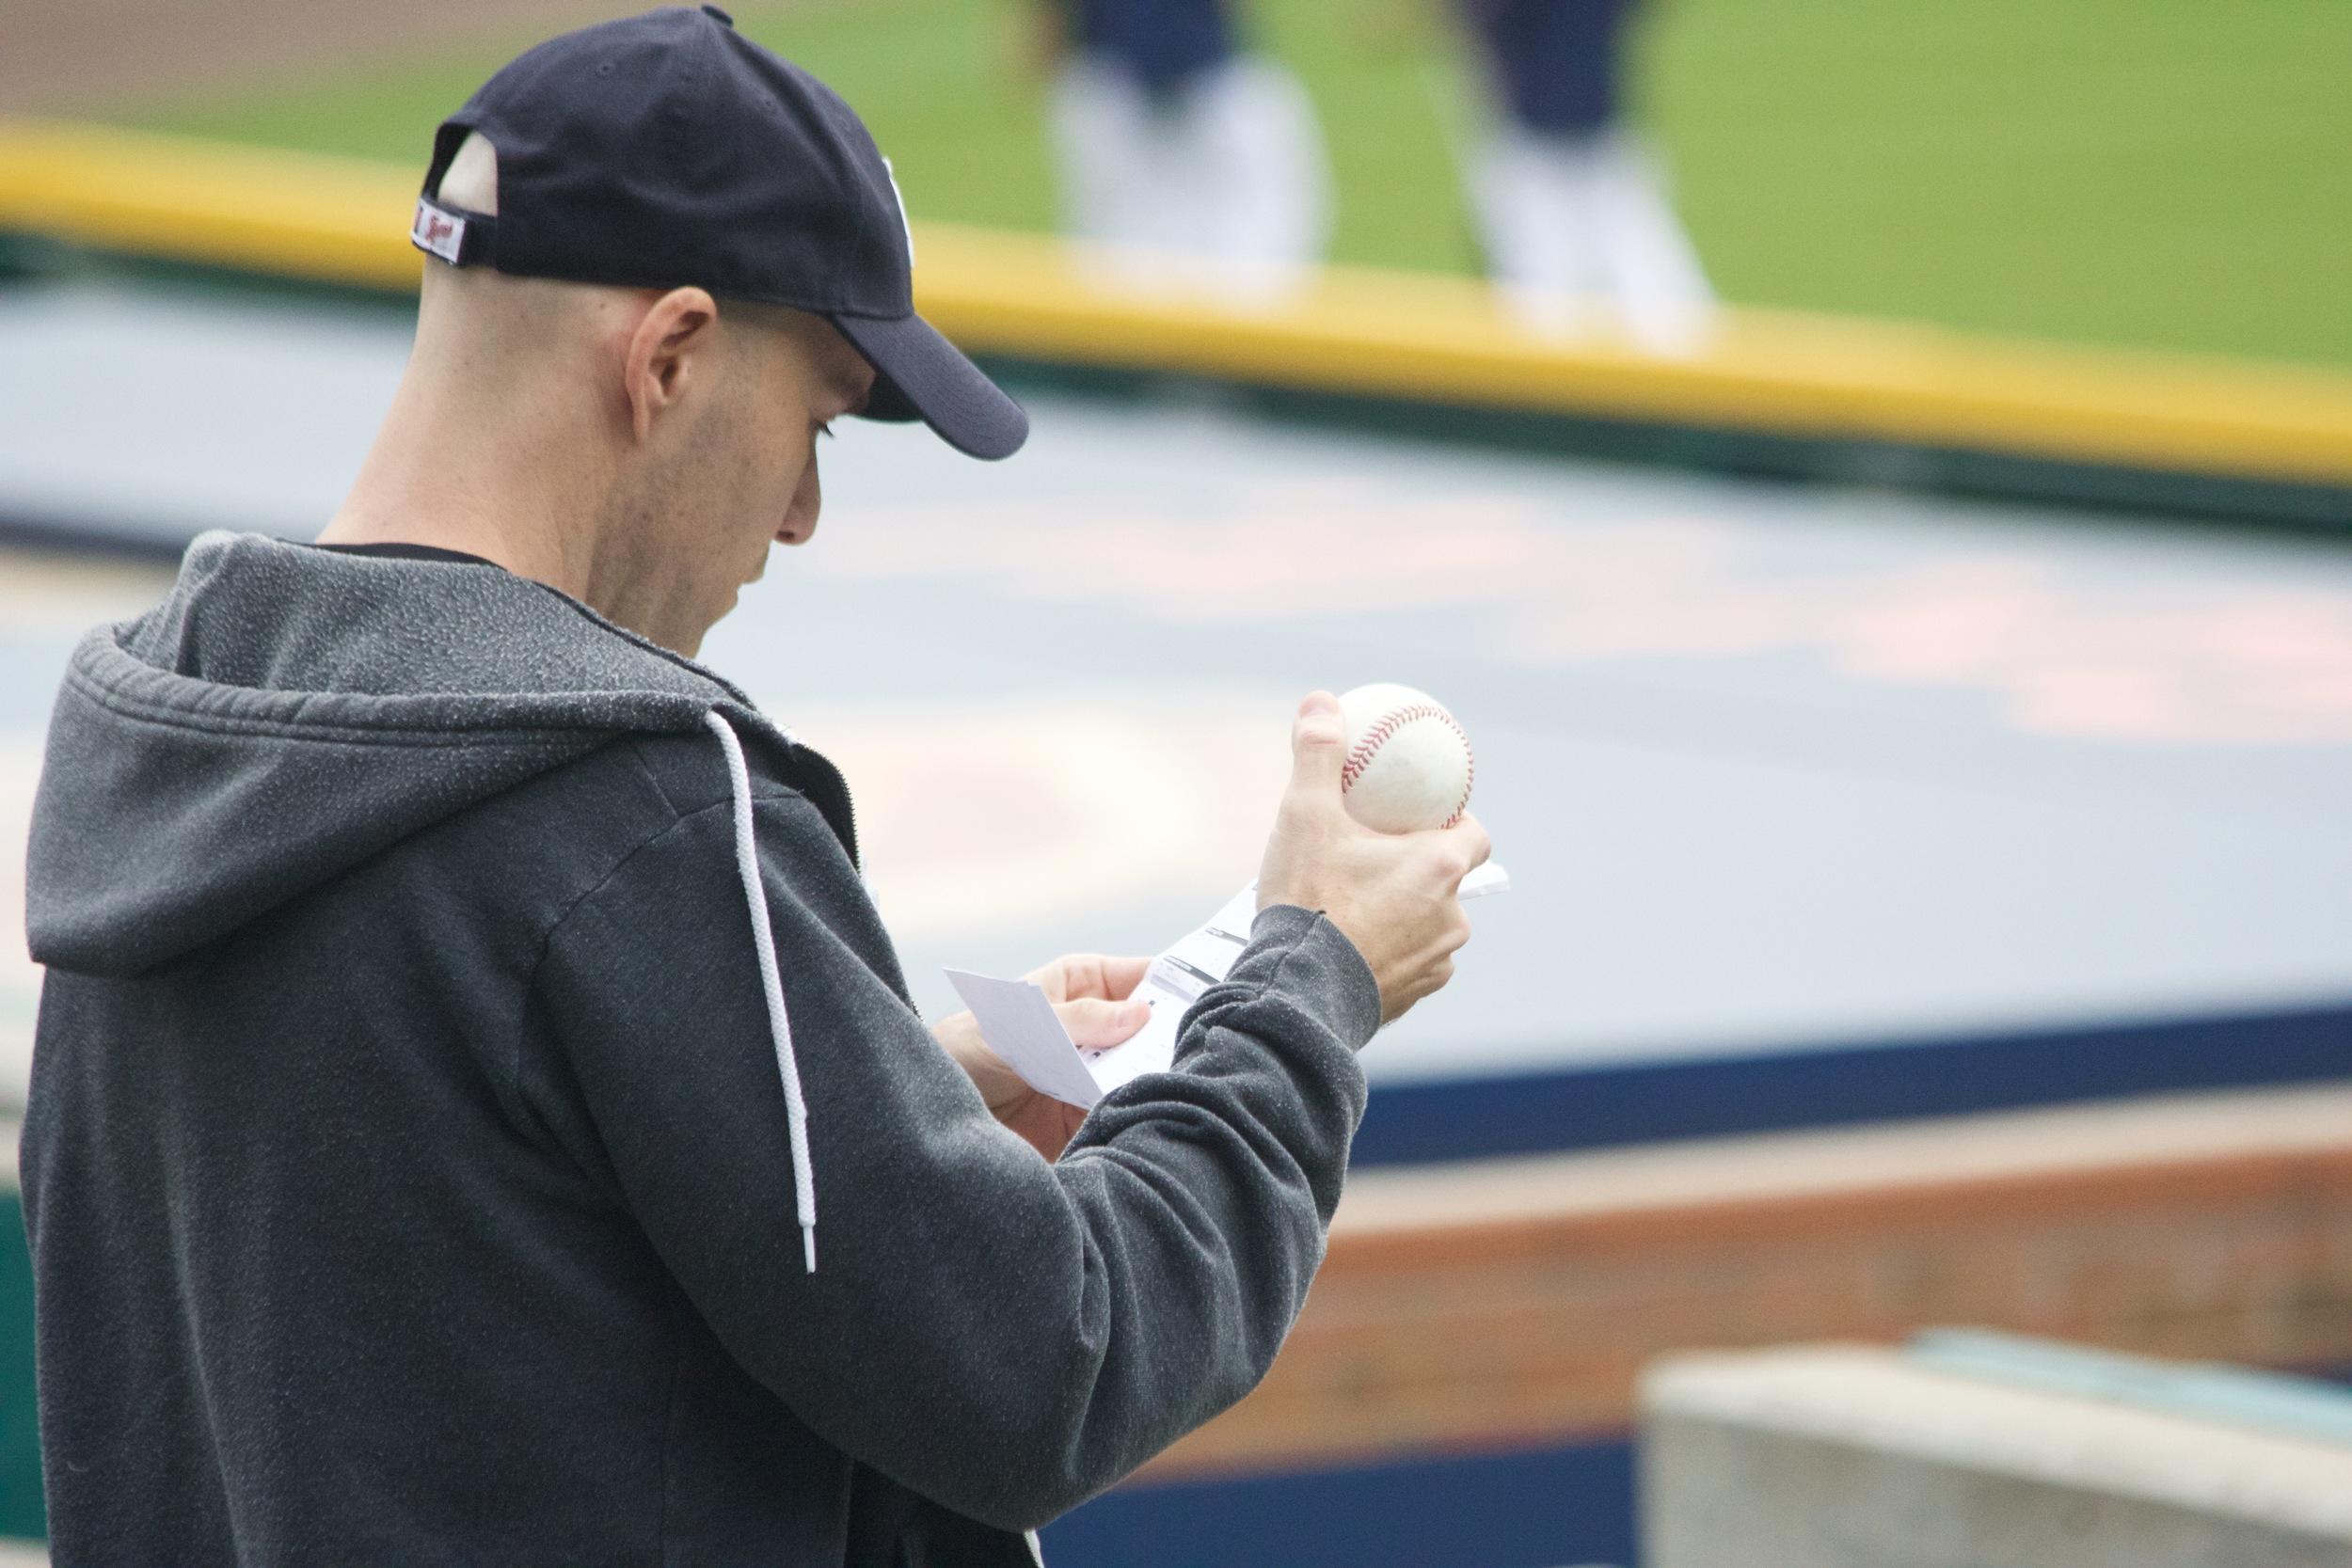 29_zack_trying_to_figure_out_who_hit_ball8743_told_by_fans_it_was_james_mccann.jpg